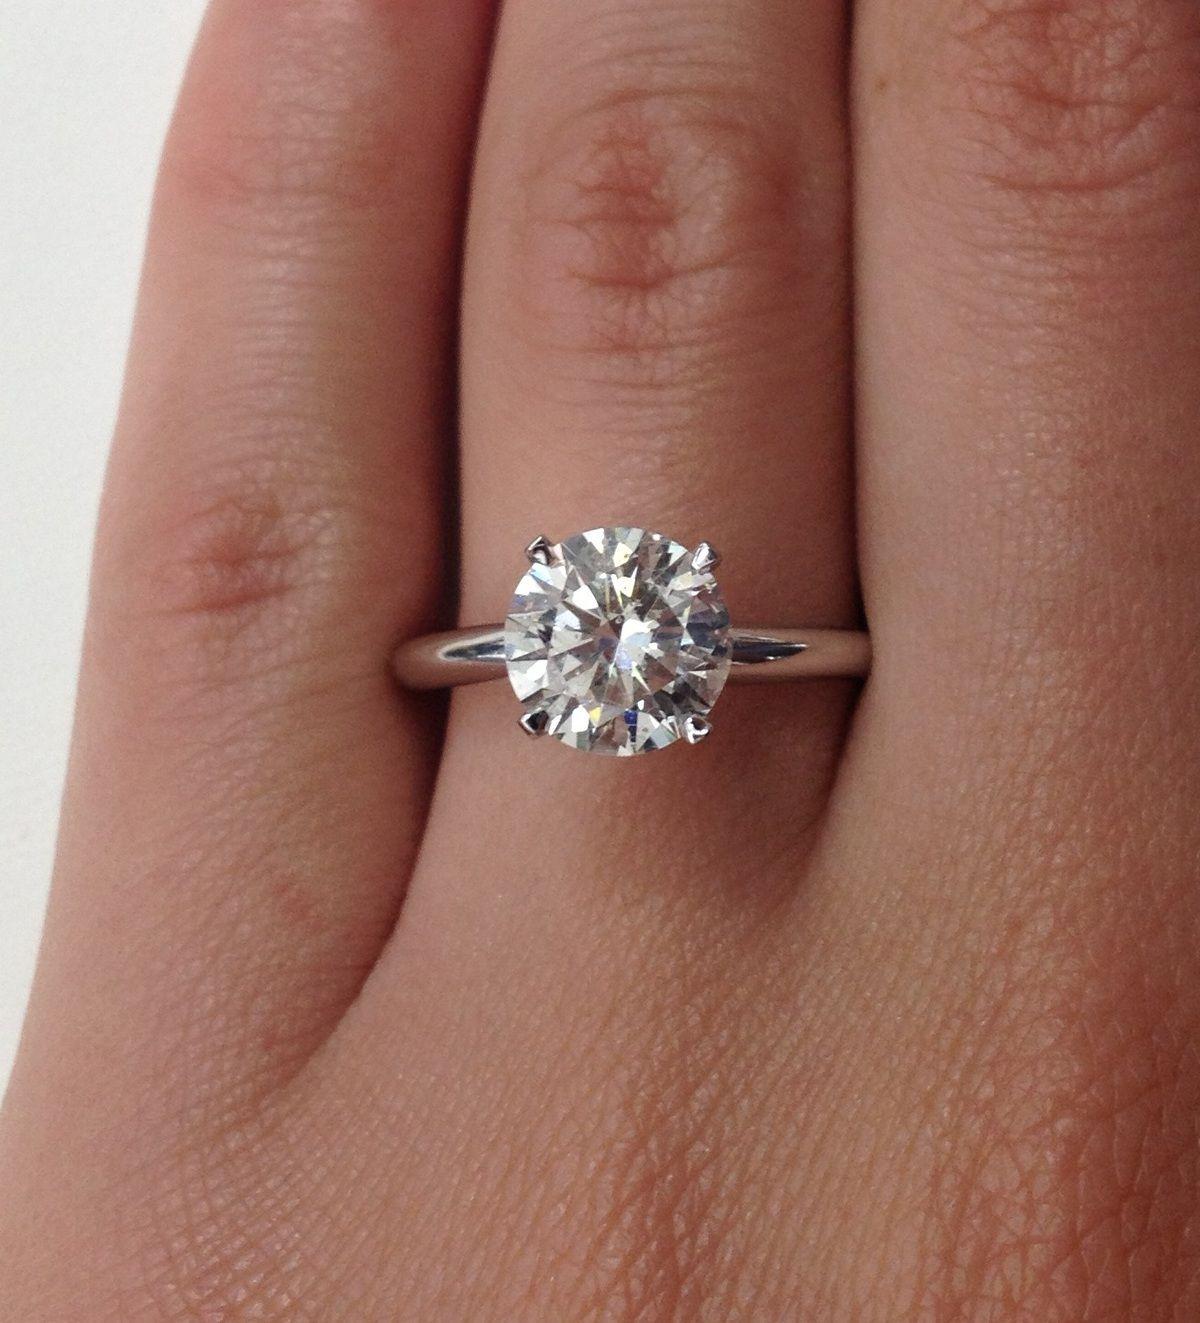 The Truth About a 2 Carat Diamond Engagement Ring